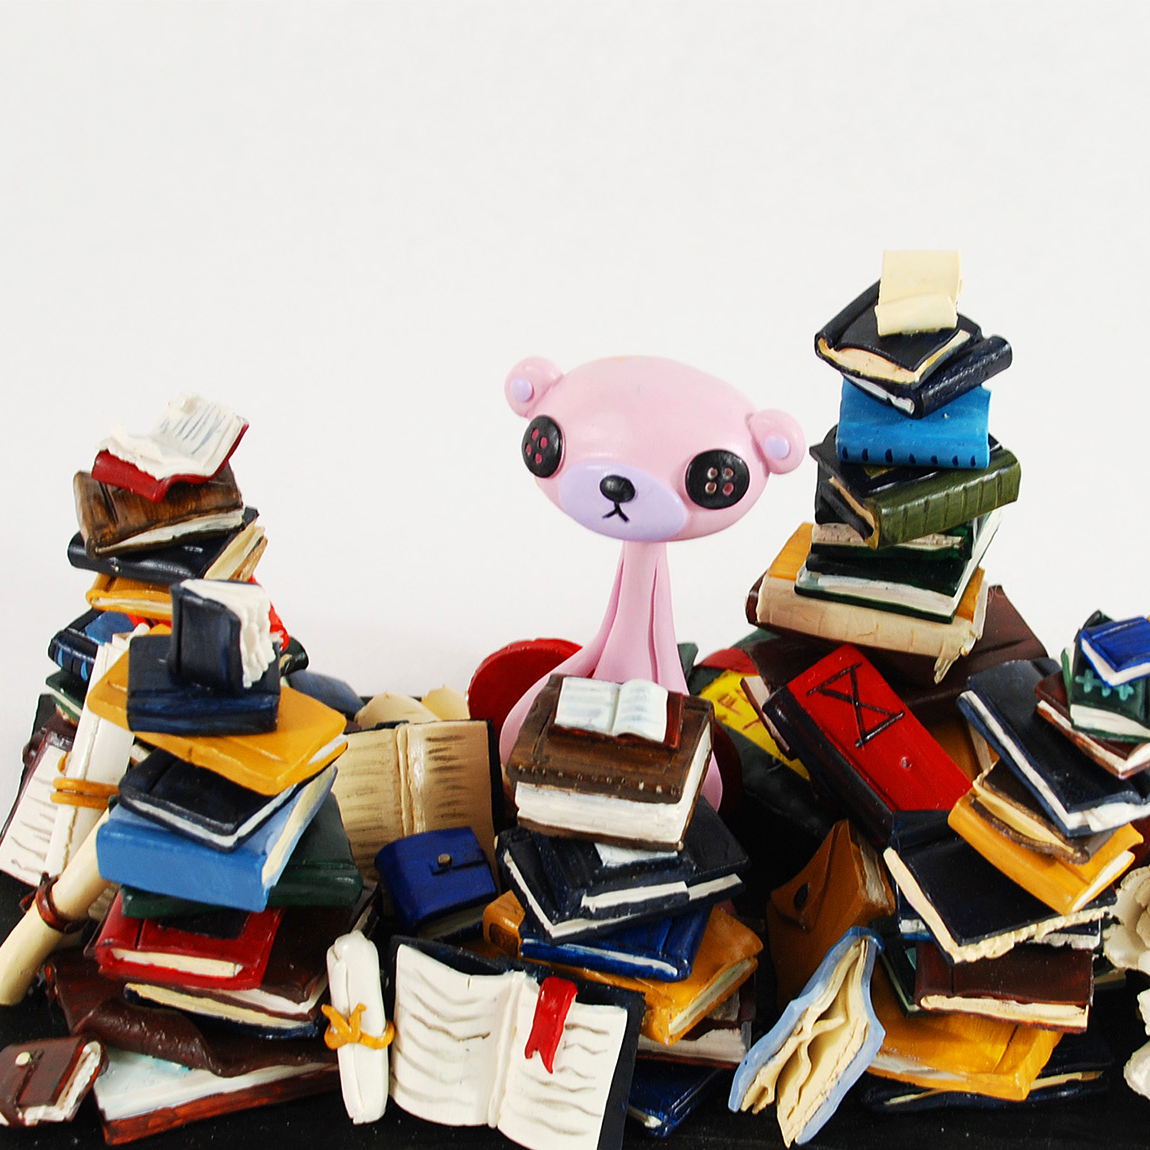 I Need More Books - Sculpture